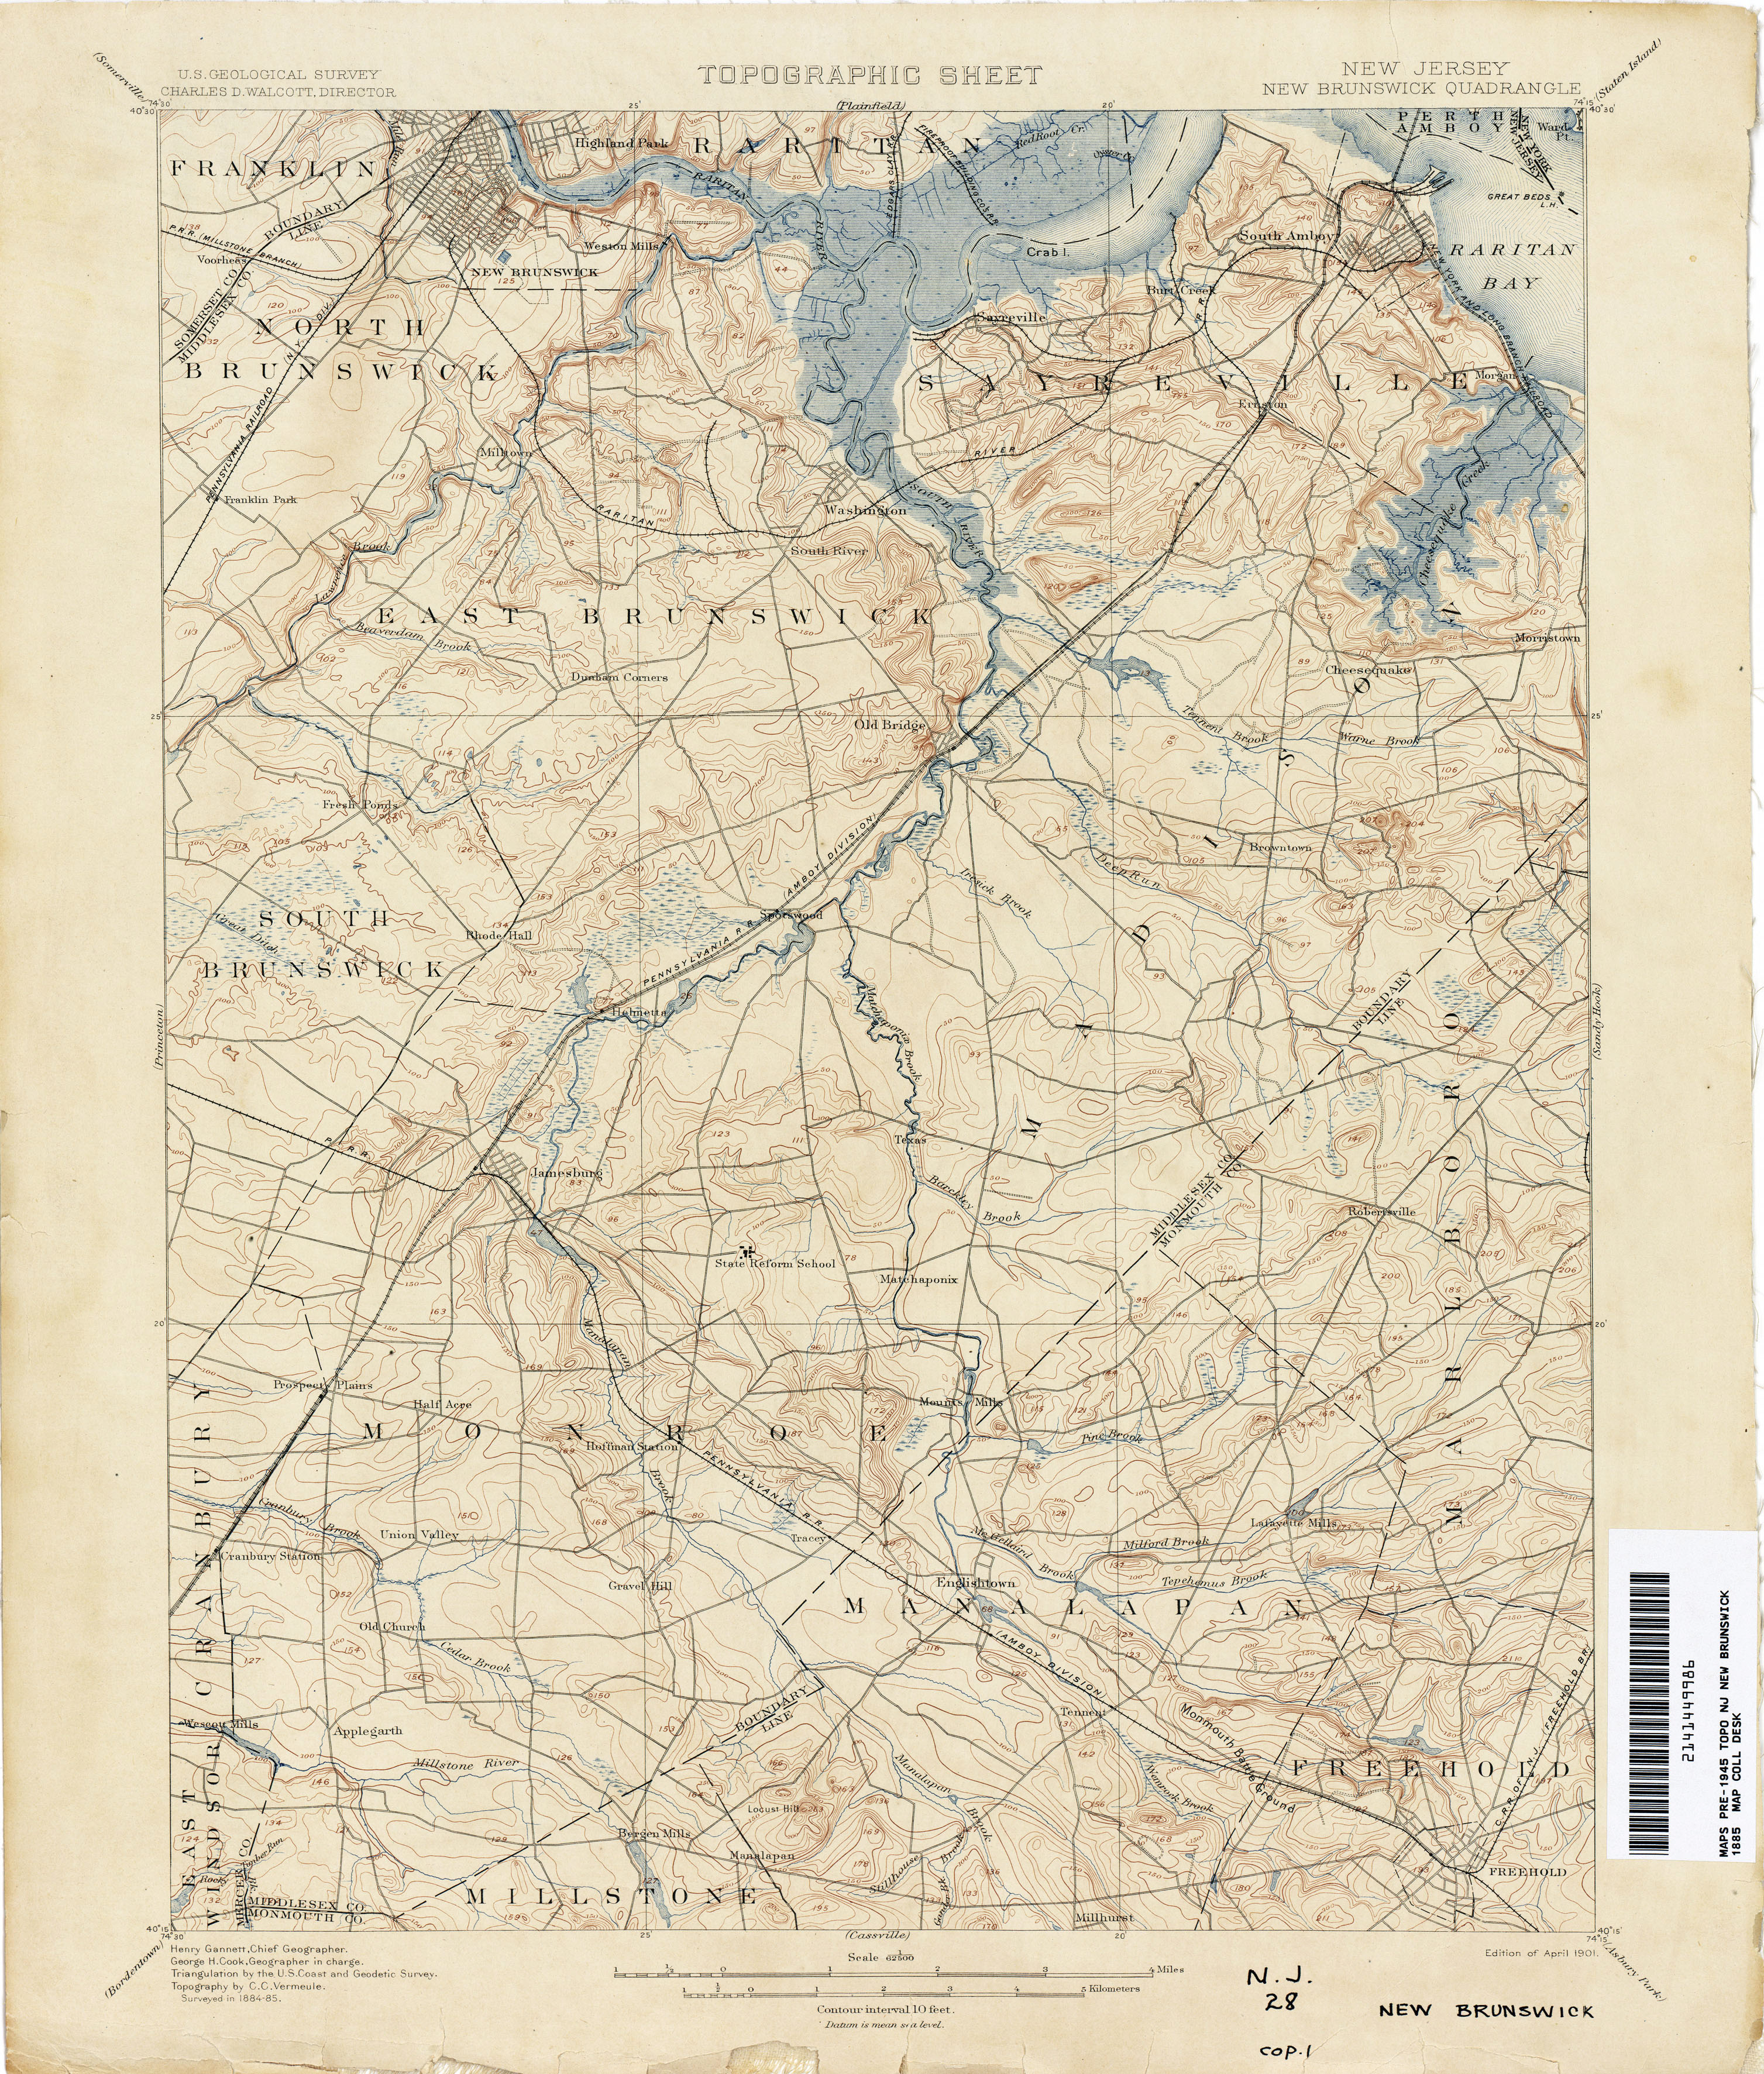 topographic map new jersey New Jersey Topographic Maps Perry Castaneda Map Collection Ut